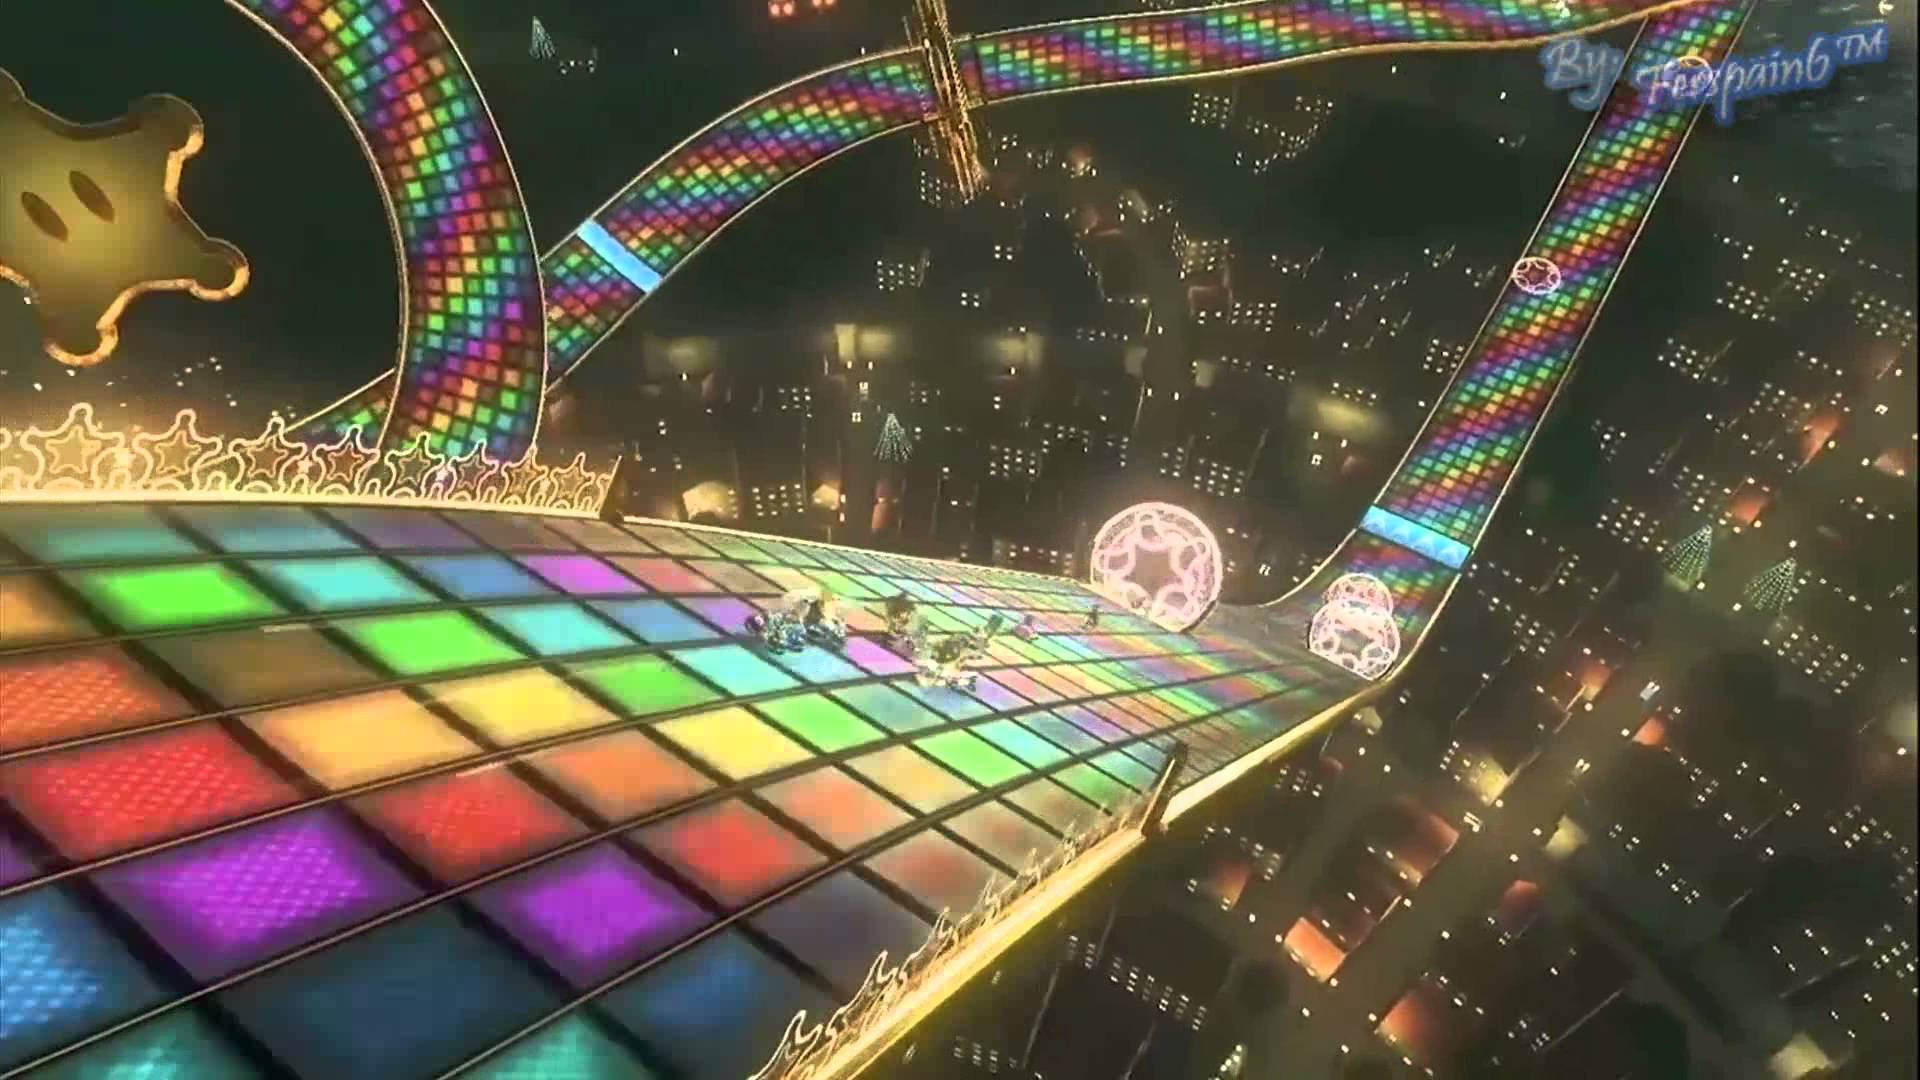 Mario Kart 8 Background: Mario Kart 8 Wallpaper HD